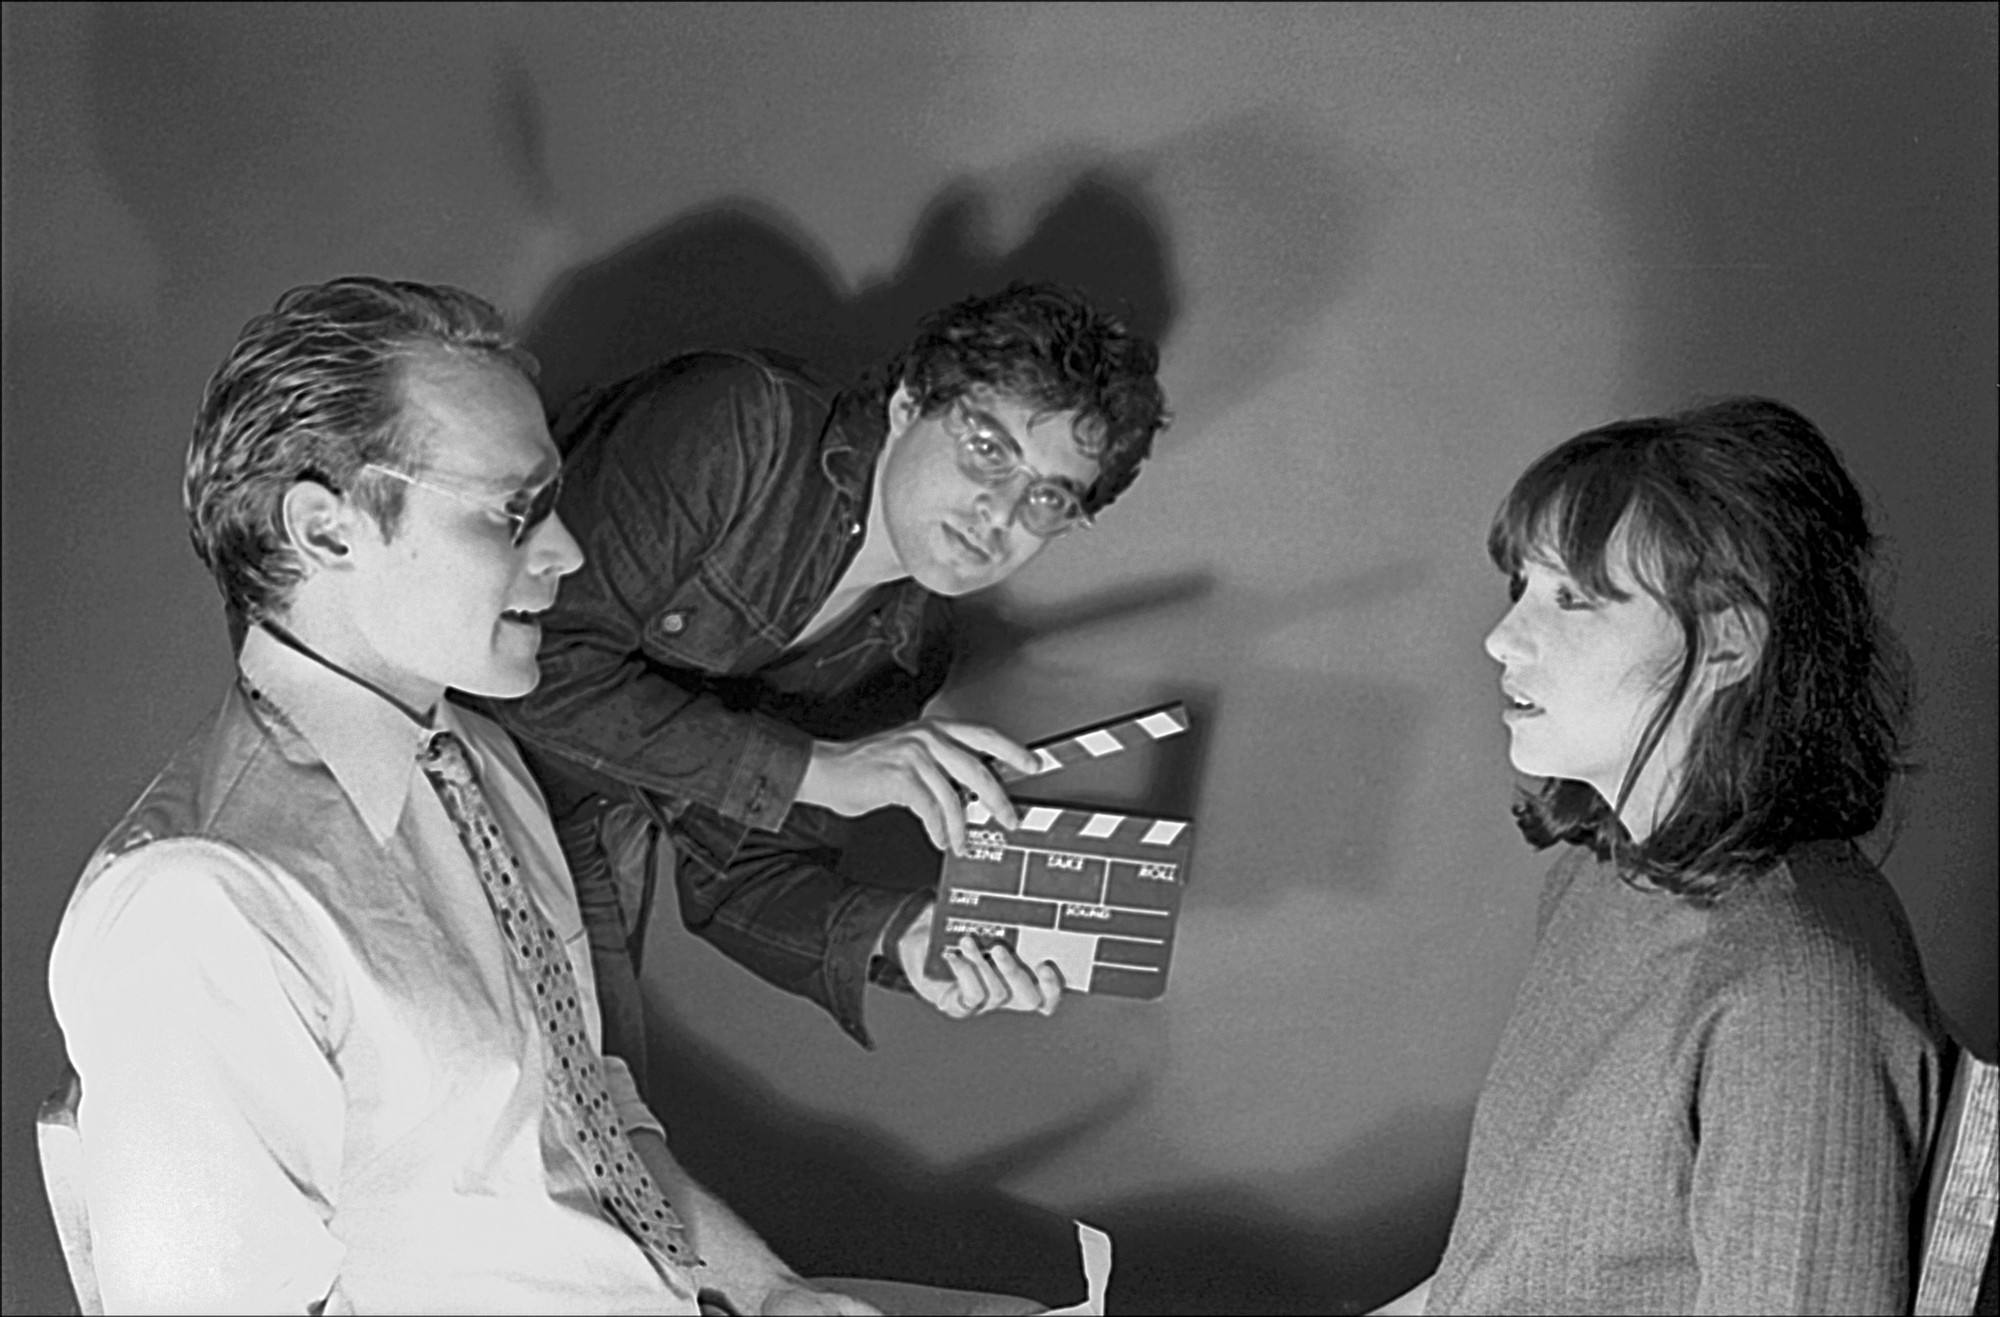 Will Patton, Michael Oblowitz and Rosemary Hochschild on the set of Circuits of Control: I/Land. 1978/2014. Directed by Michael Oblowitz. Courtesy Michael Oblowitz